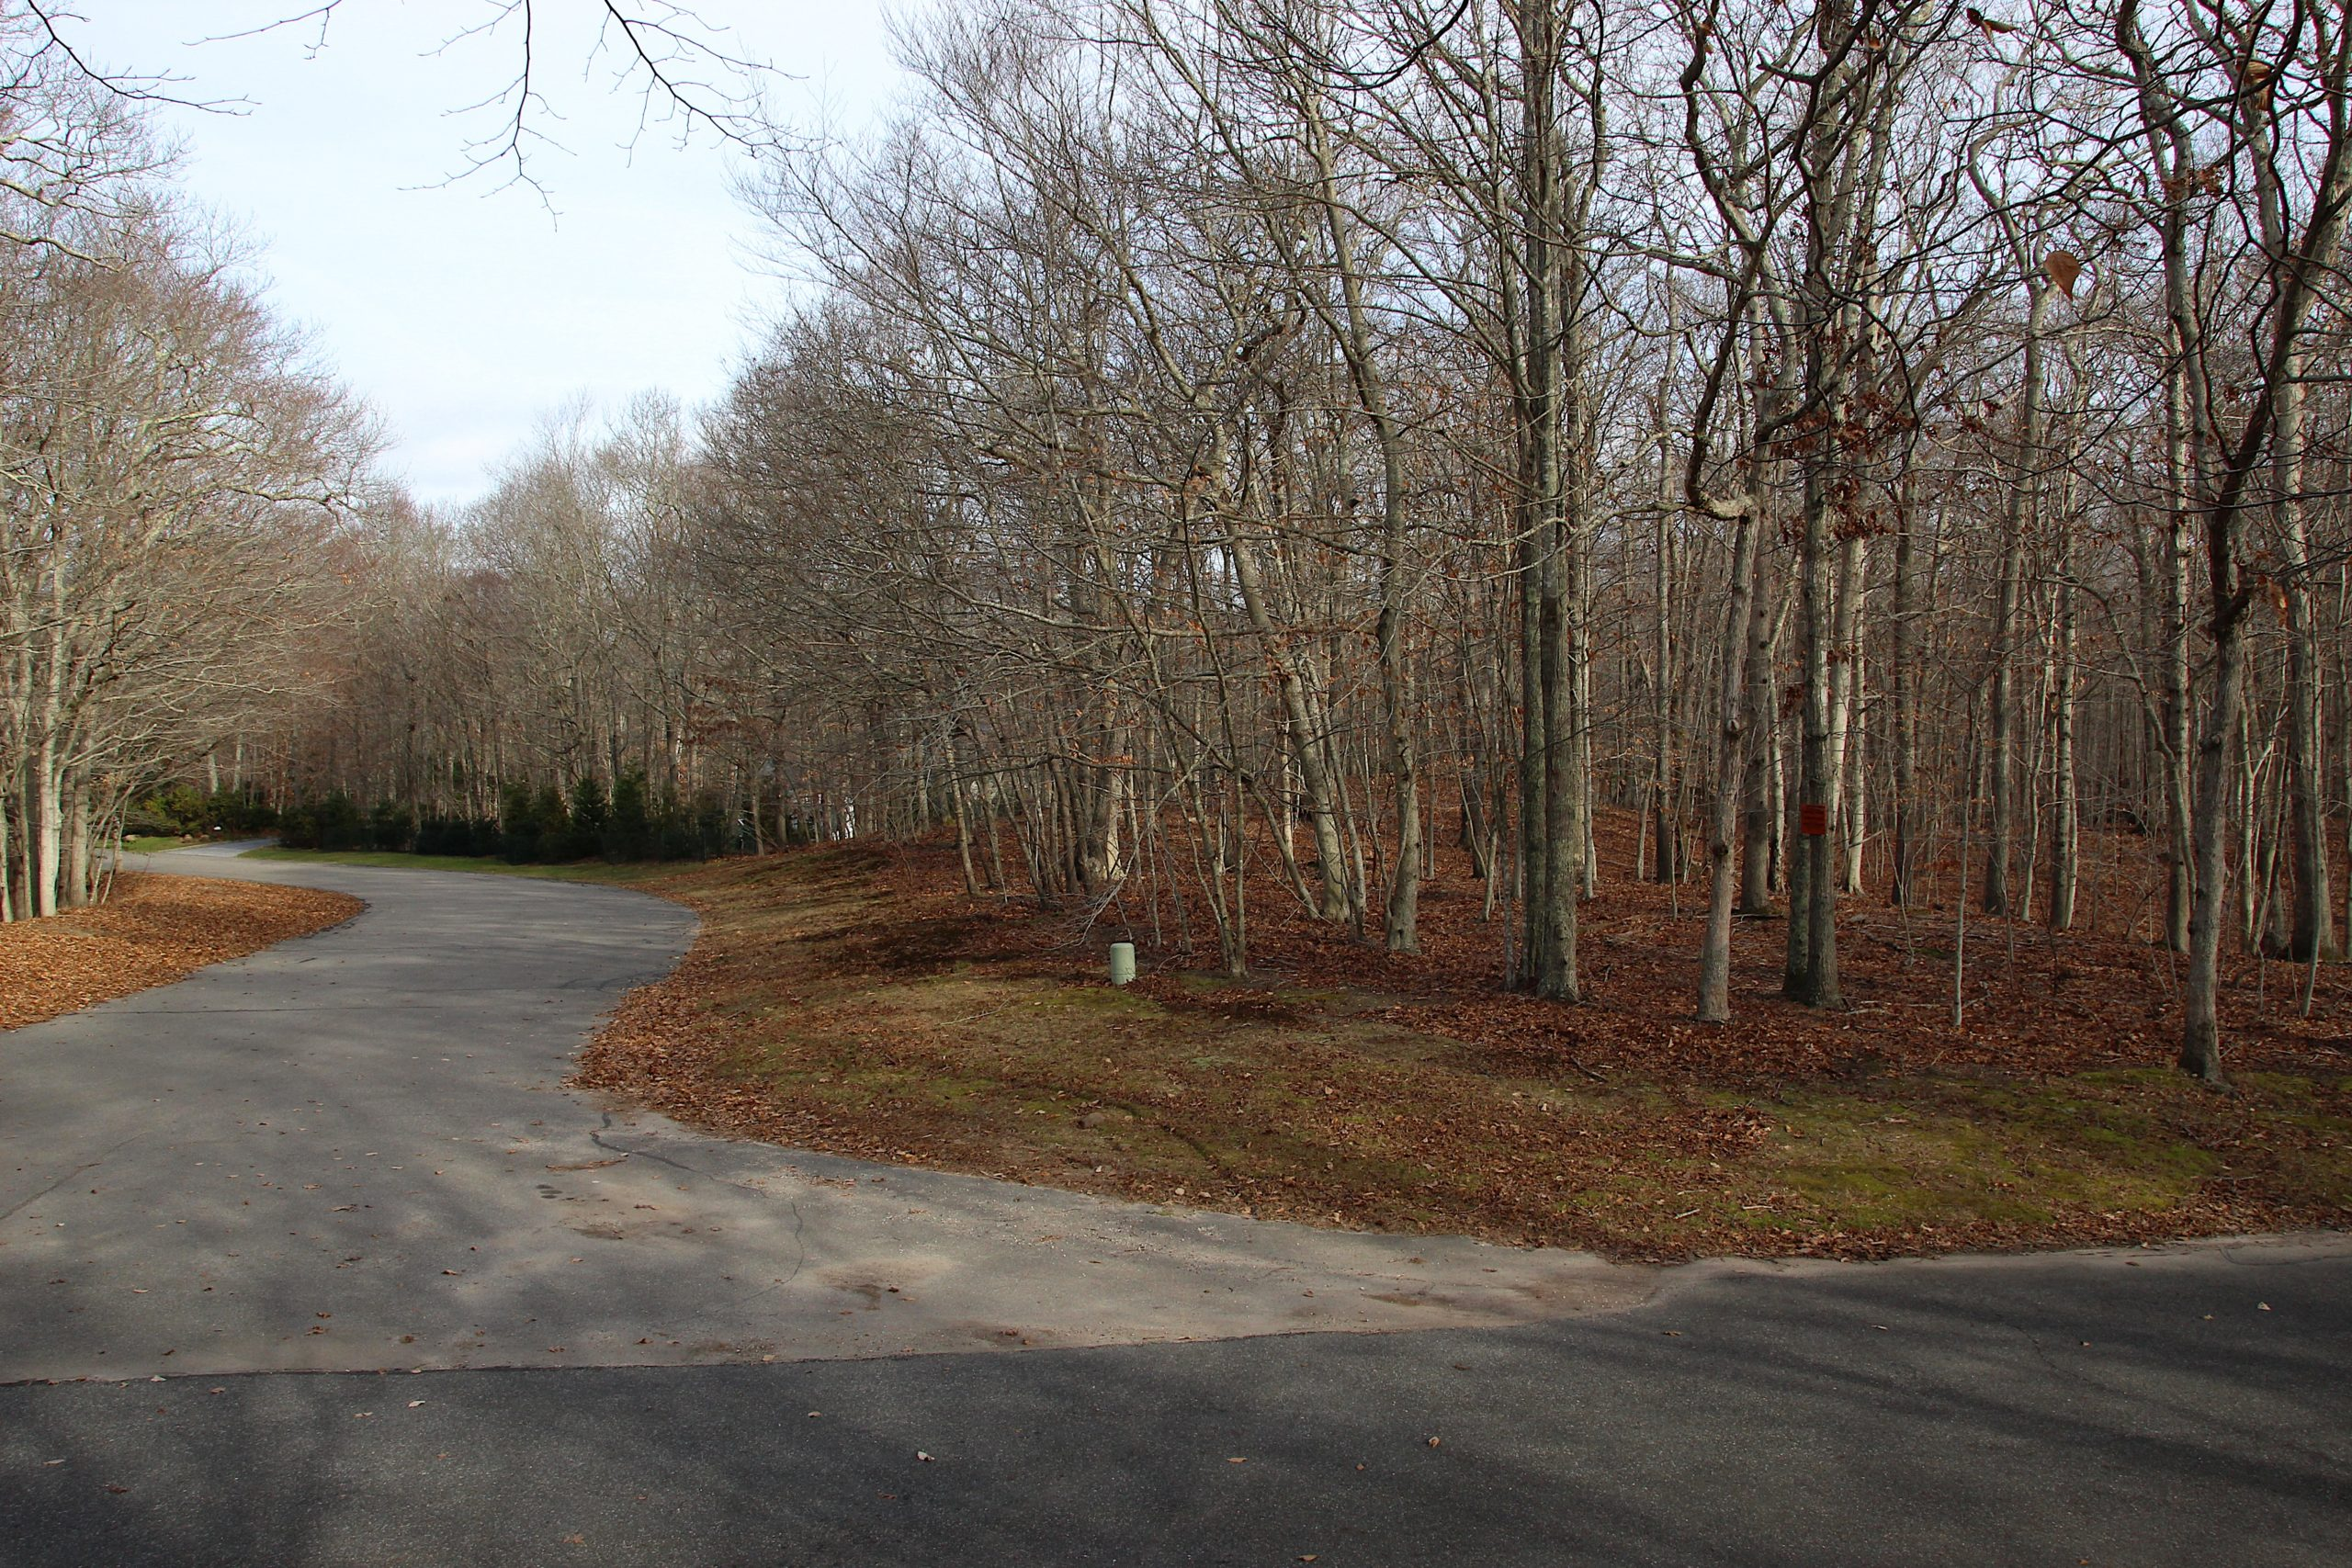 East Hampton Town has agreed to purchase 13 acres of undeveloped land off Arbor Path in the Stony Hill area of Amagansett for $7 million over the next three years.